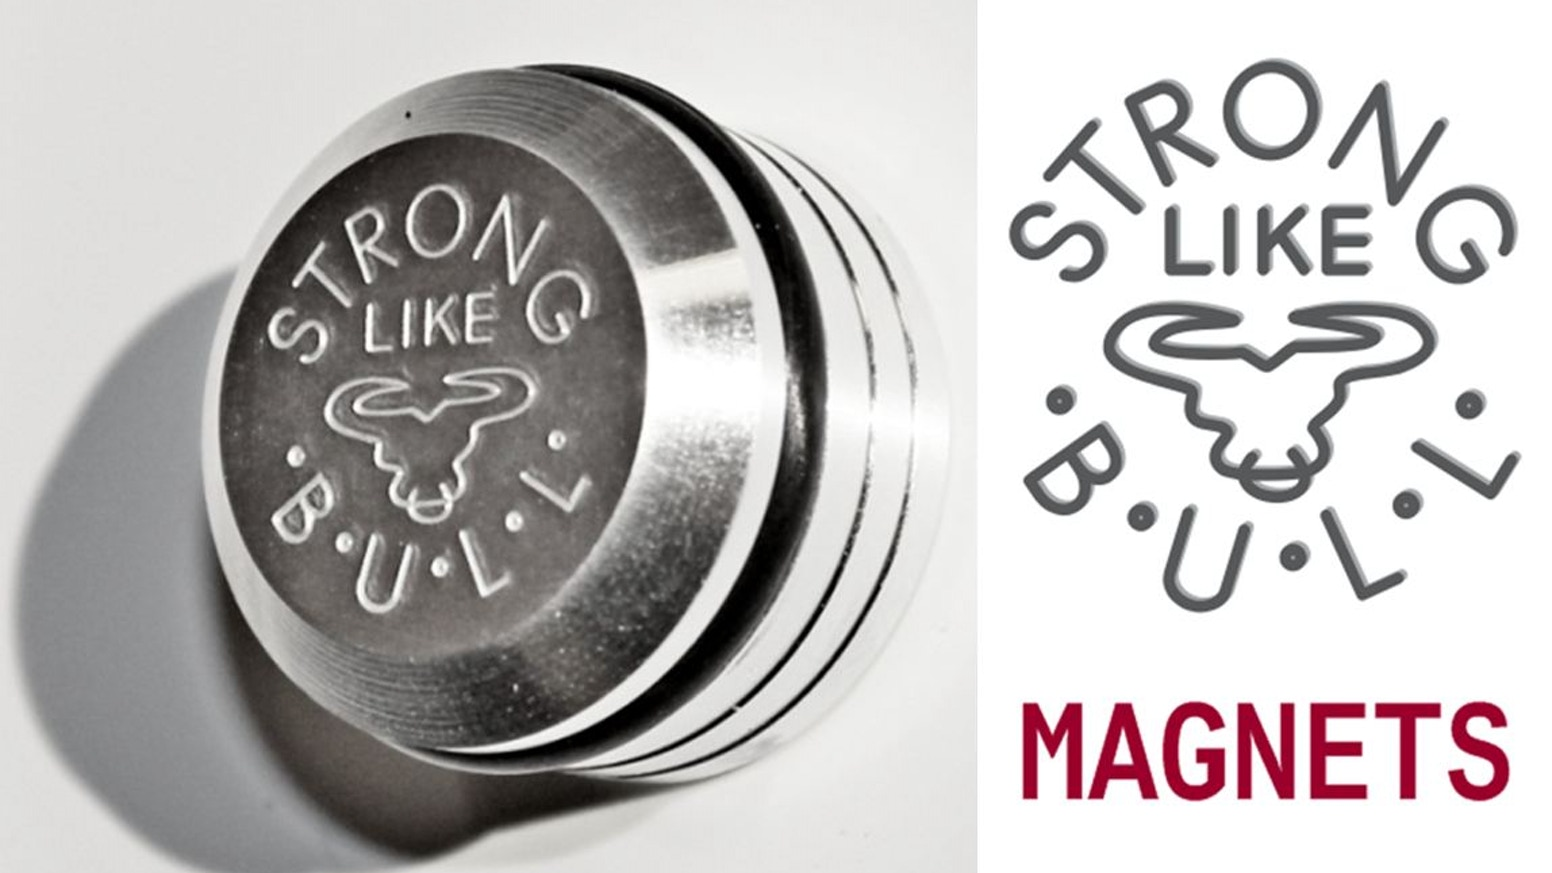 Super strong , super cool, custom machined magnet assemblies for your whiteboard, file cabinet, locker, refrigerator, etc.